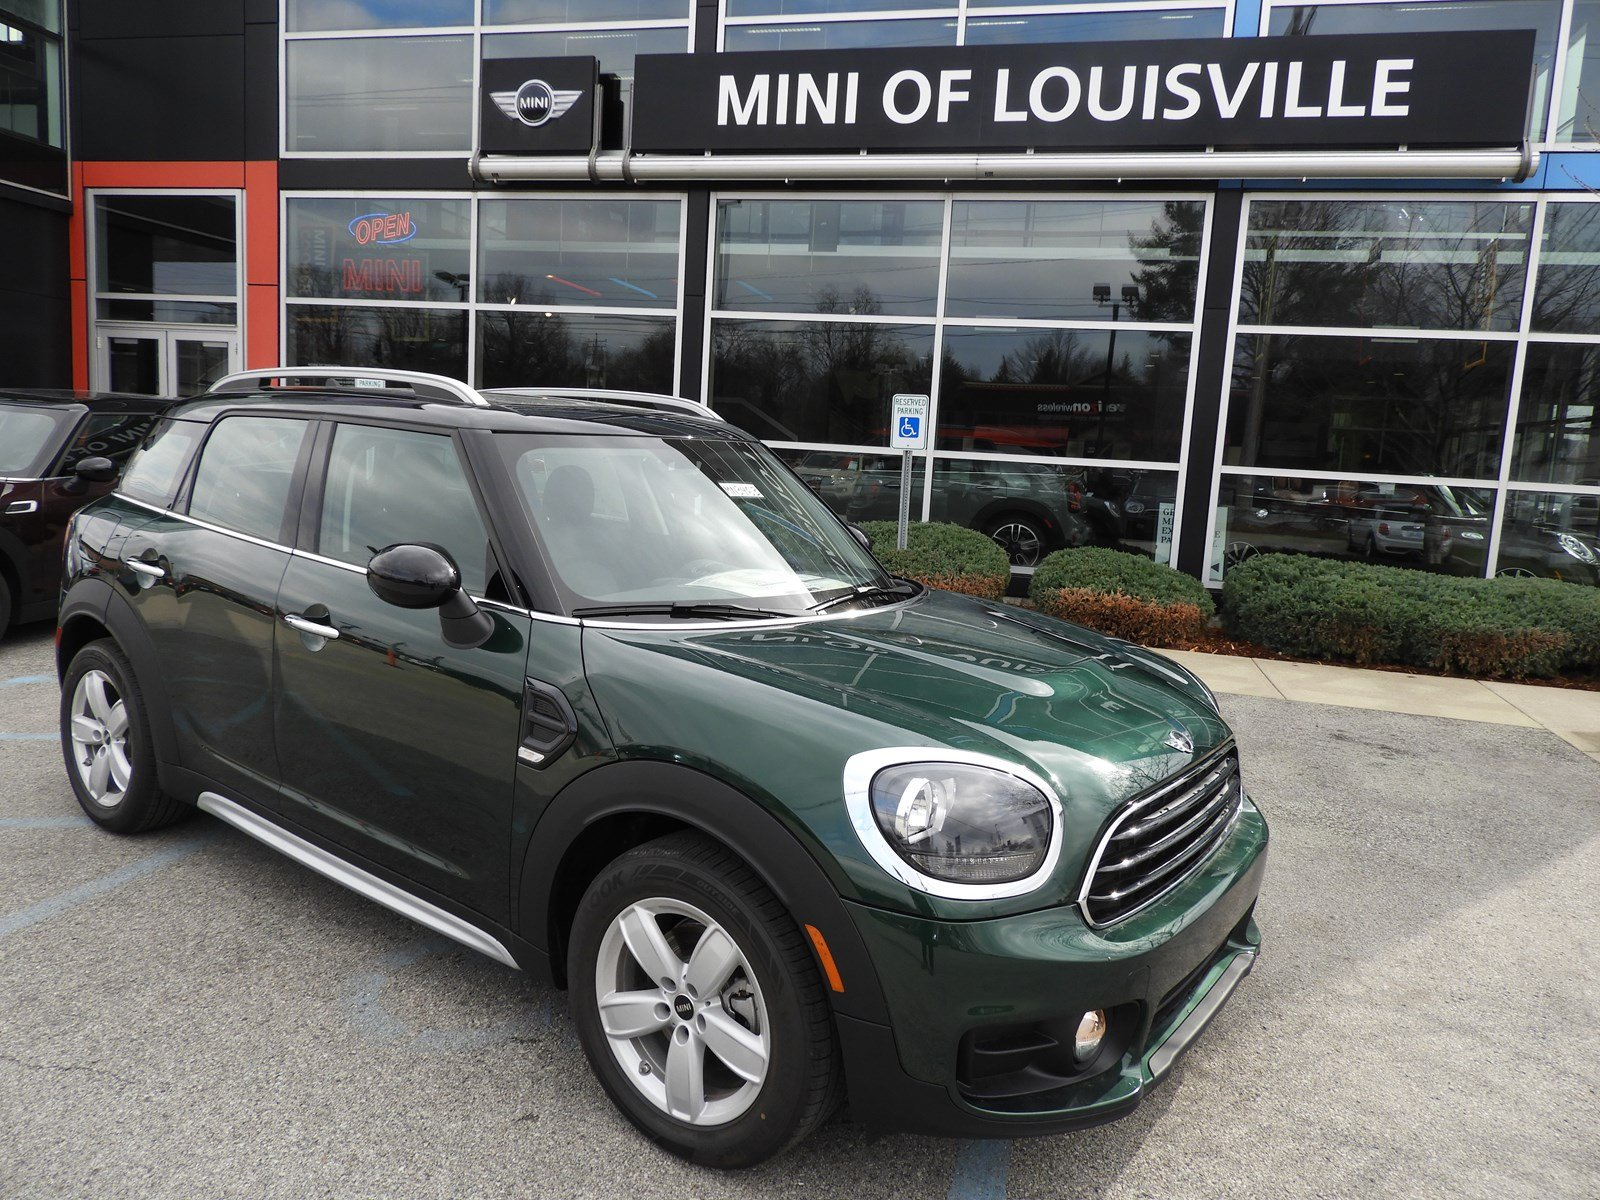 New 2018 mini countryman cooper sport utility in louisville mn3463 mini of louisville Mini cooper exterior accessories